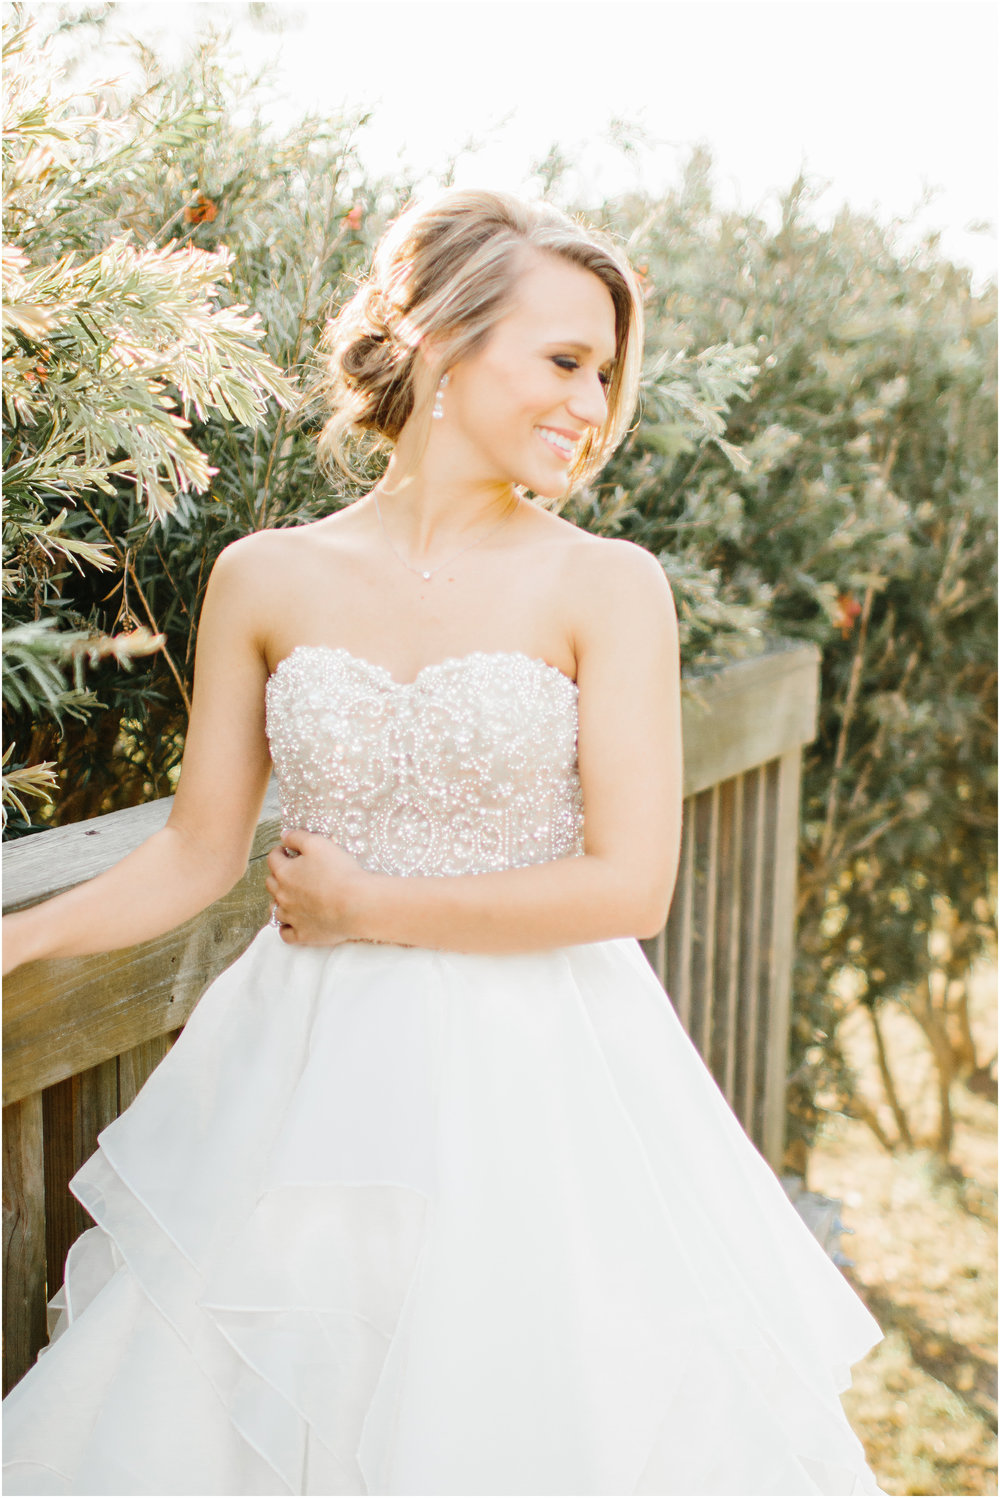 Natural_bridals_Grassy_field-6.jpg